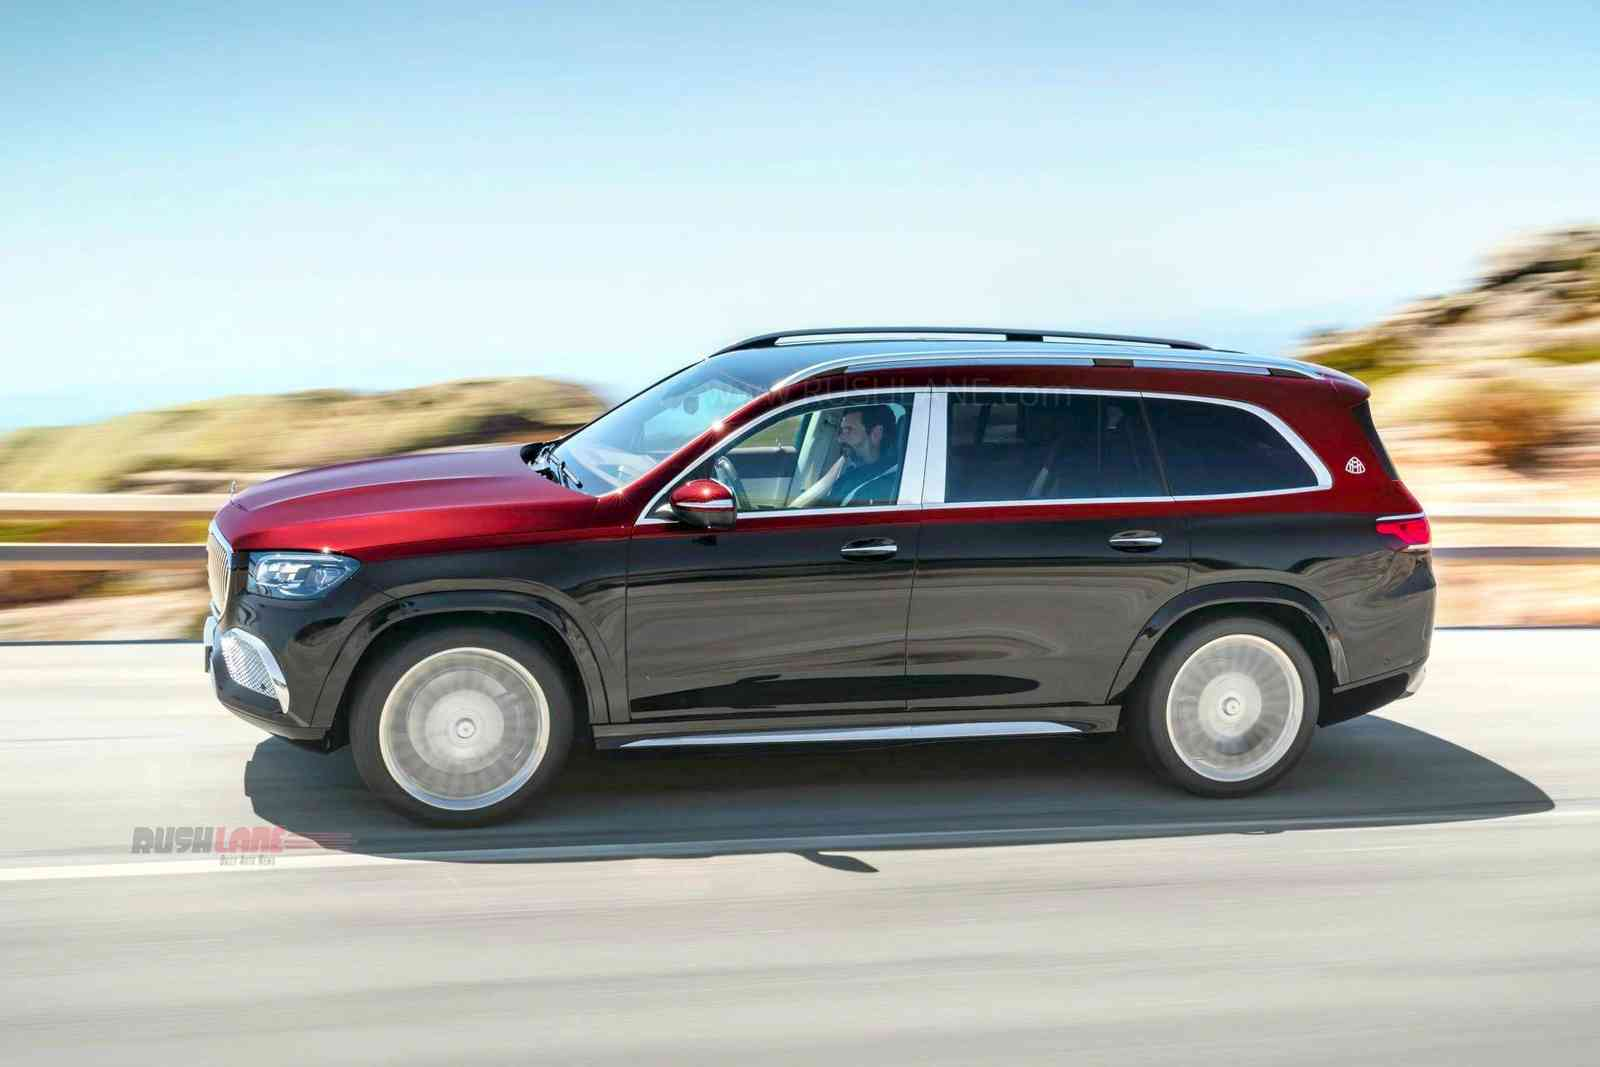 Mercedes Maybach Gls 600 Debuts Most Luxurious Suv From Mercedes